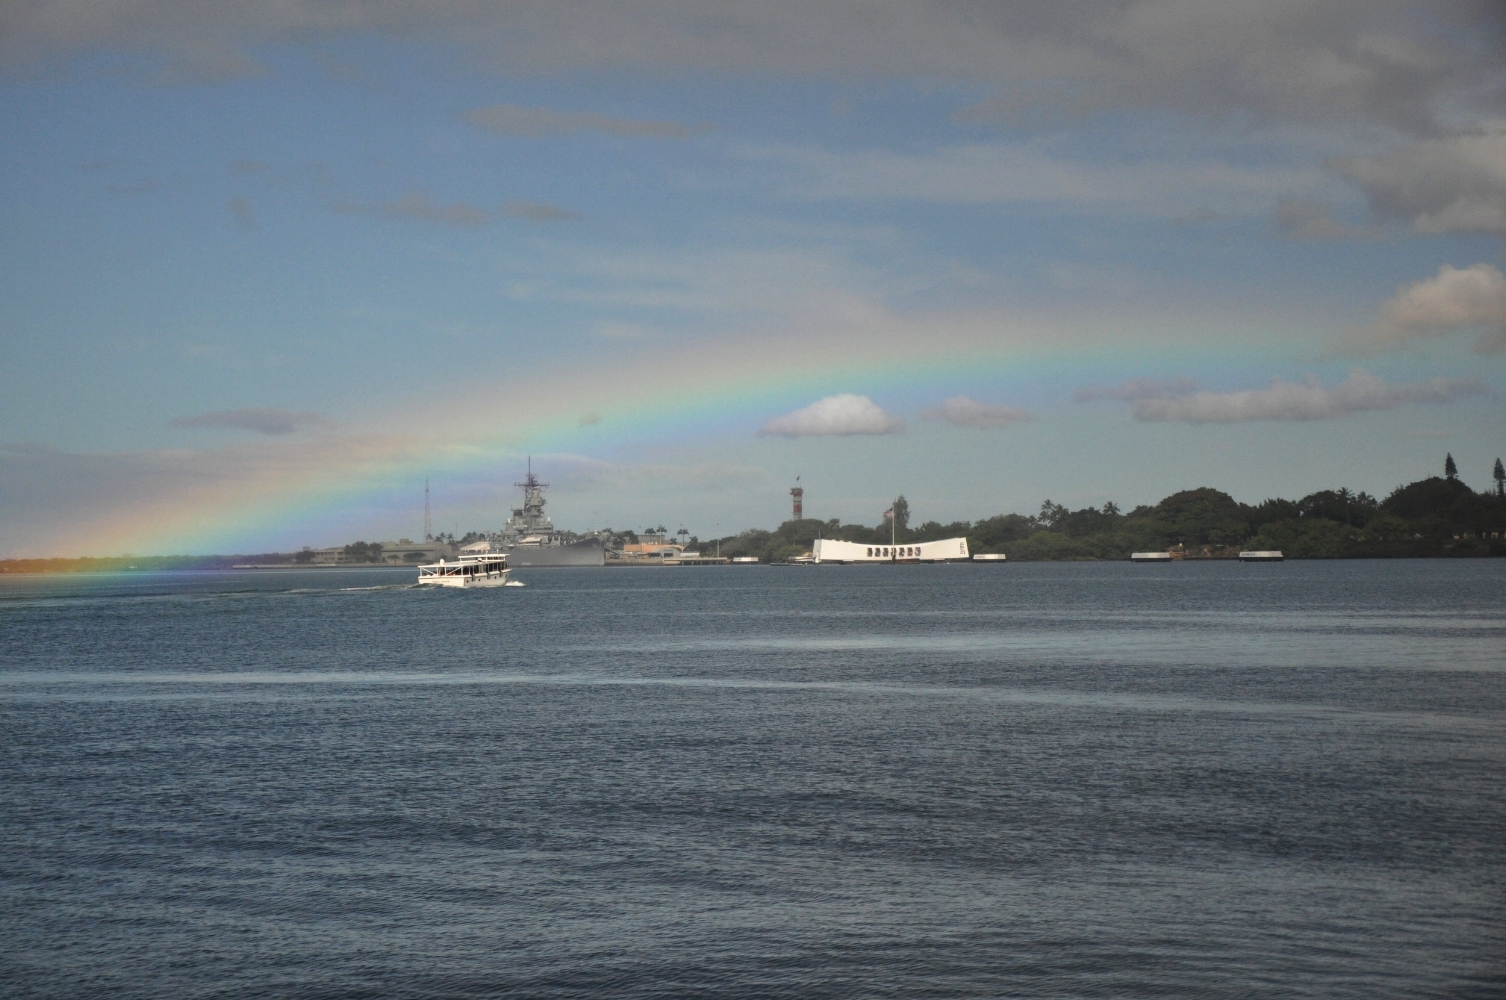 View from Contemplation Circle of Pearl Harbor with the USS  Arizona  memorial and USS  Missouri  in the background.